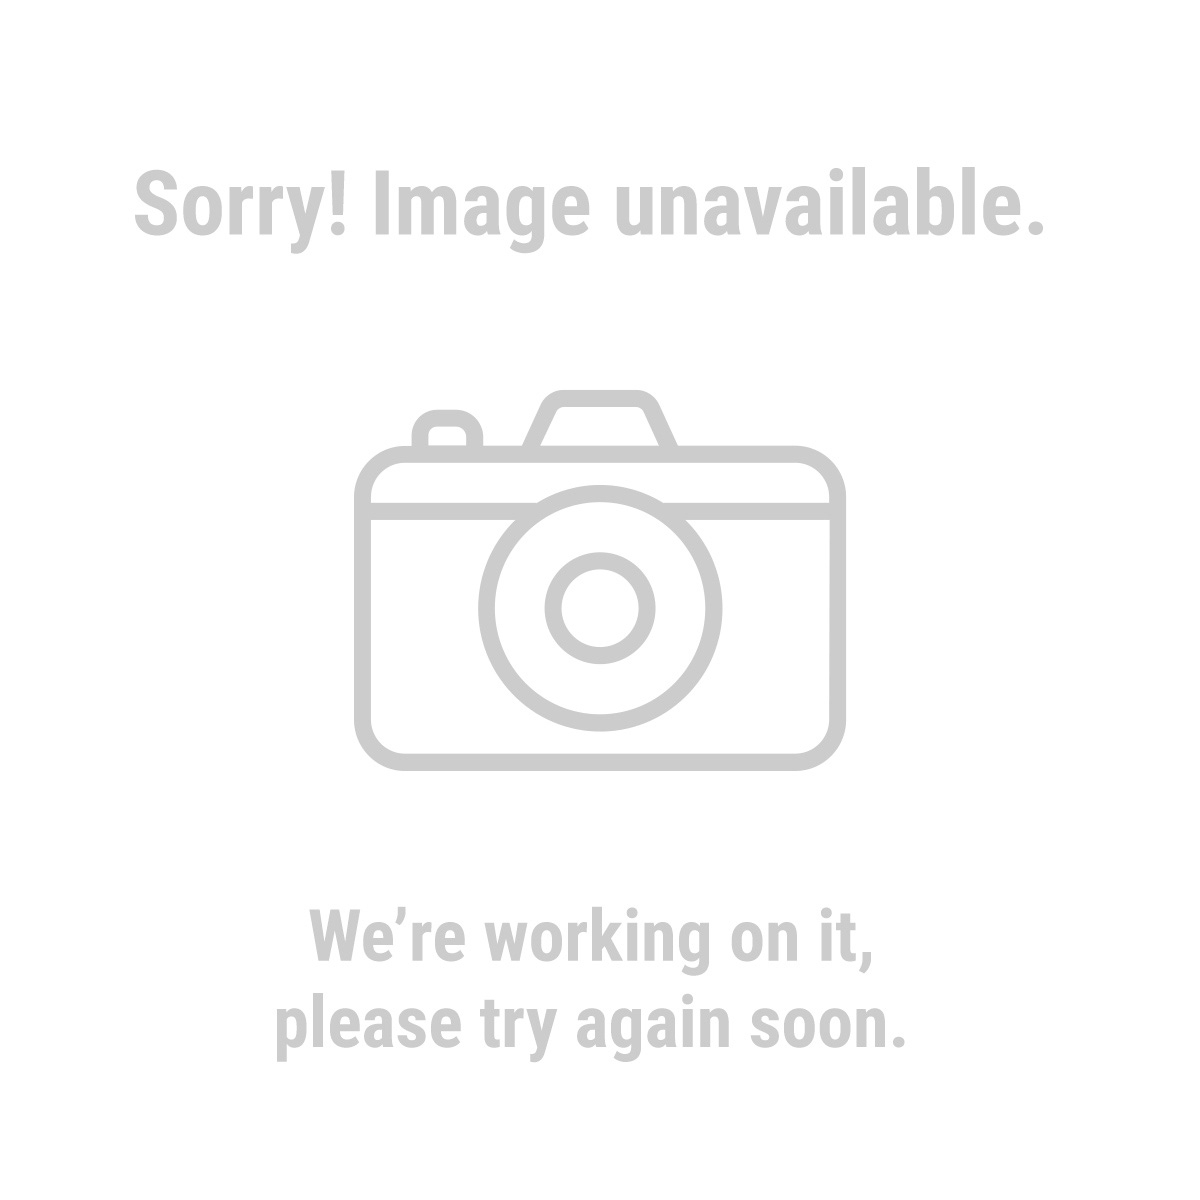 Haul-Master 60579 3 in. x 30 ft. Heavy Duty Recovery Strap